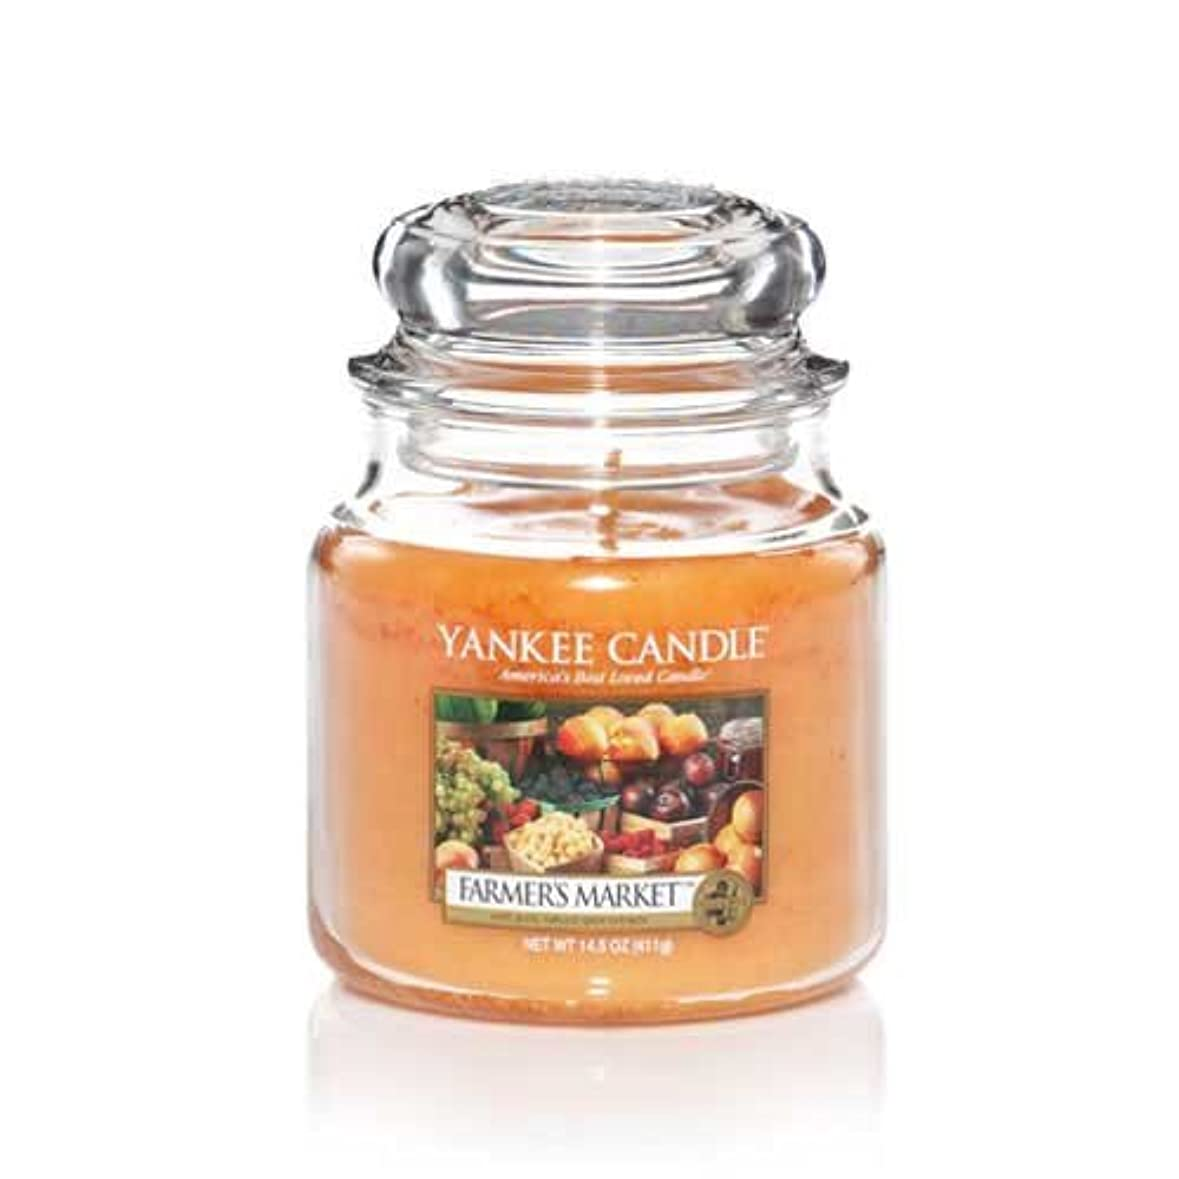 読書をする神聖マイクロプロセッサYankee Candle Farmer 's Market Medium Jar Candle, Food & Spice香り